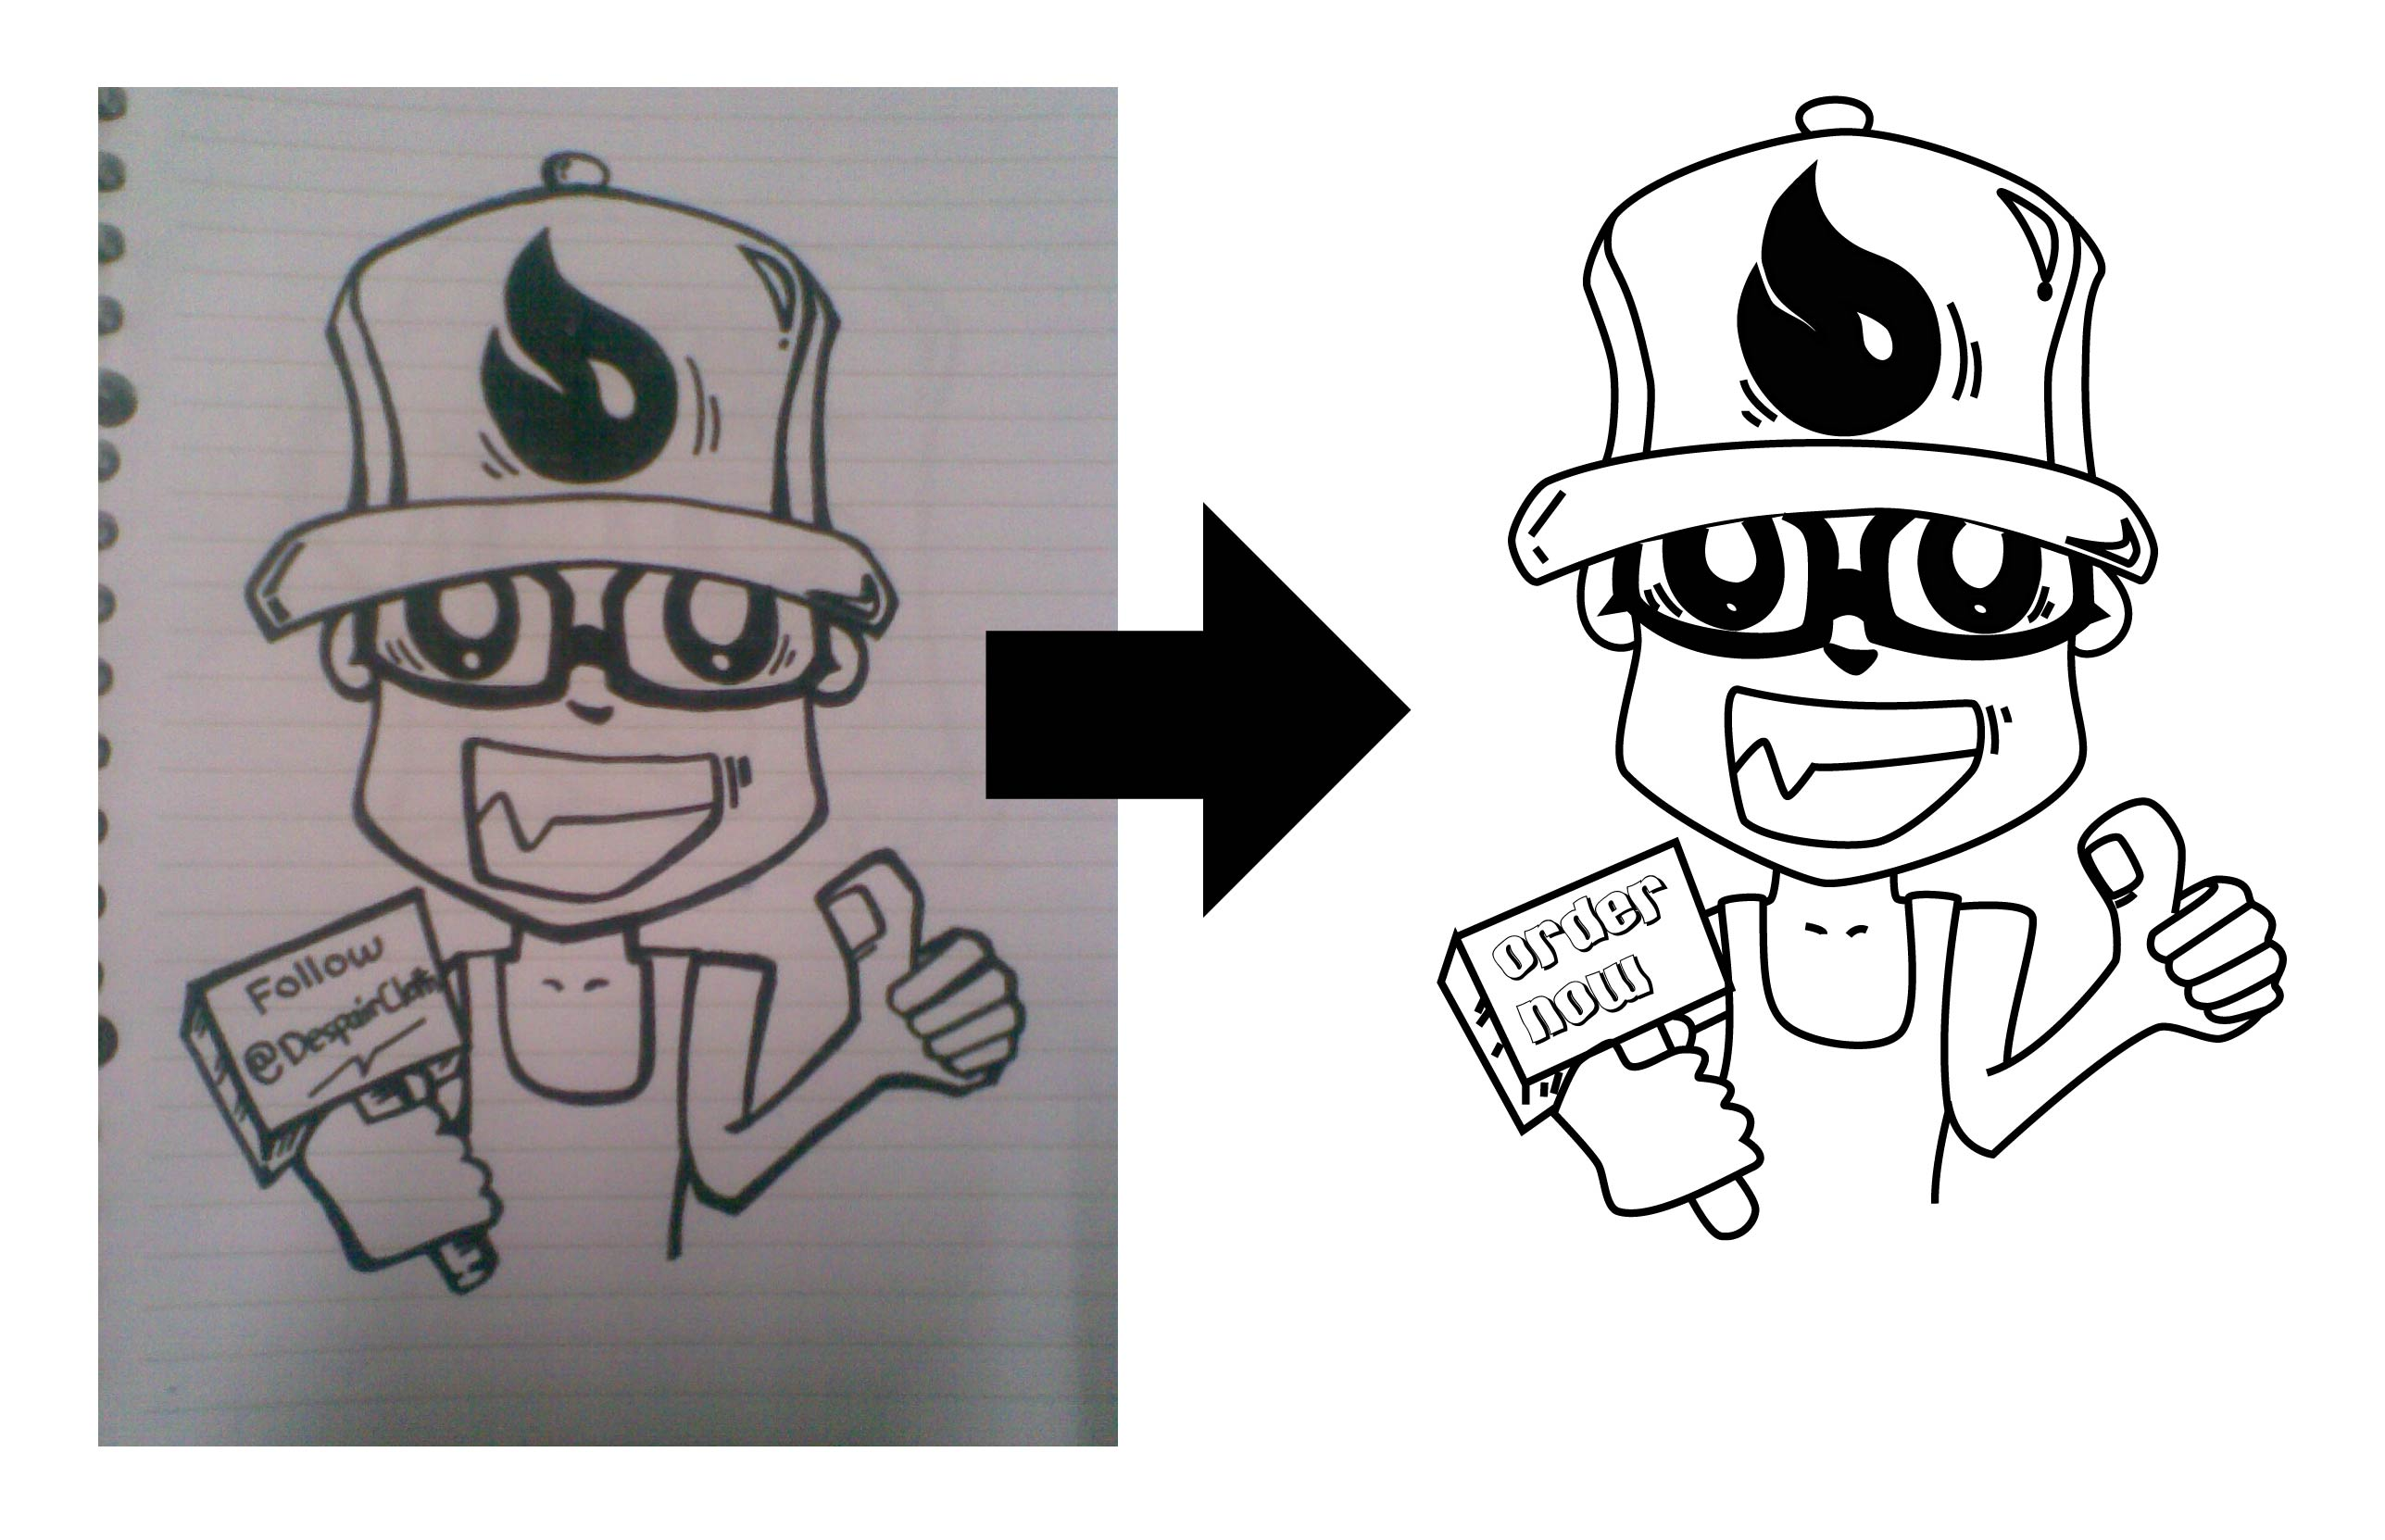 tracing your sketch or logo into a vector image